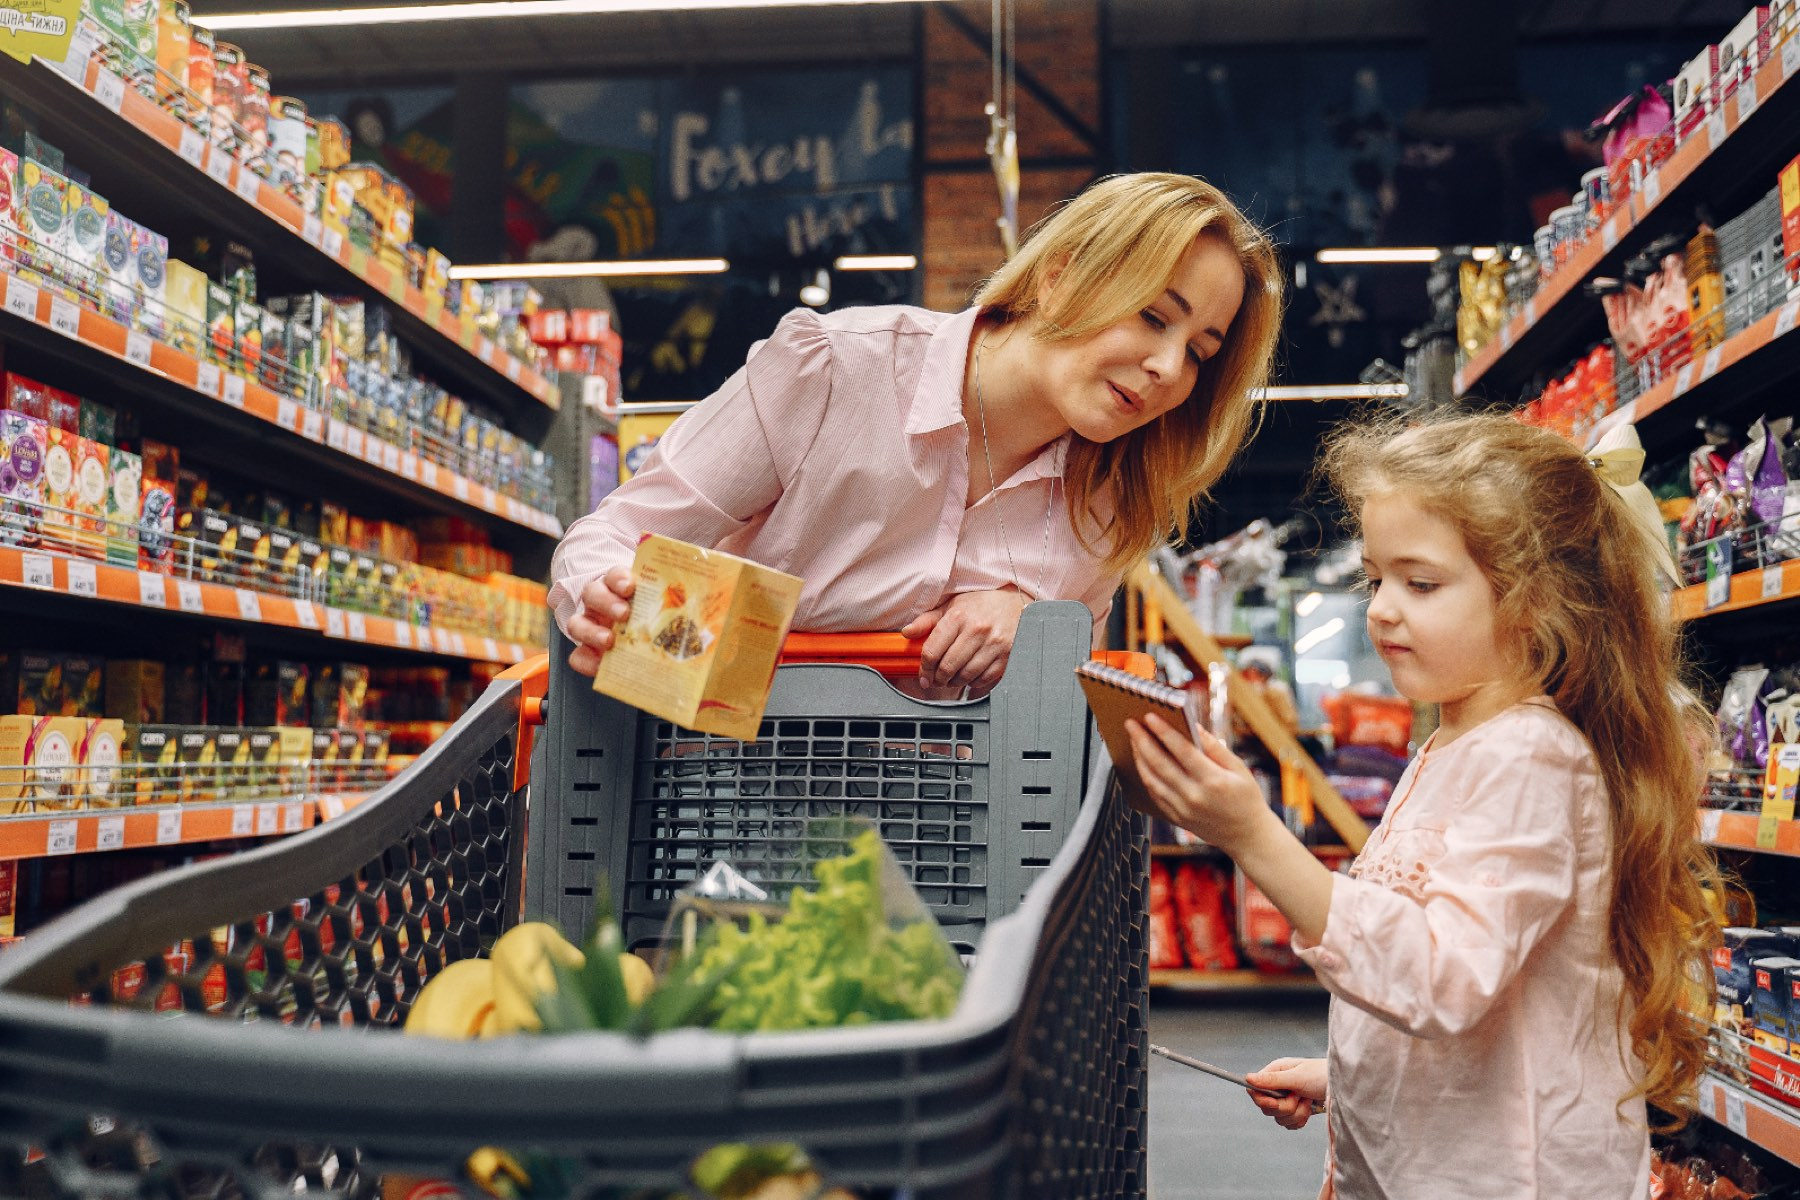 Photo of a woman with a young daughter grocery shopping together.